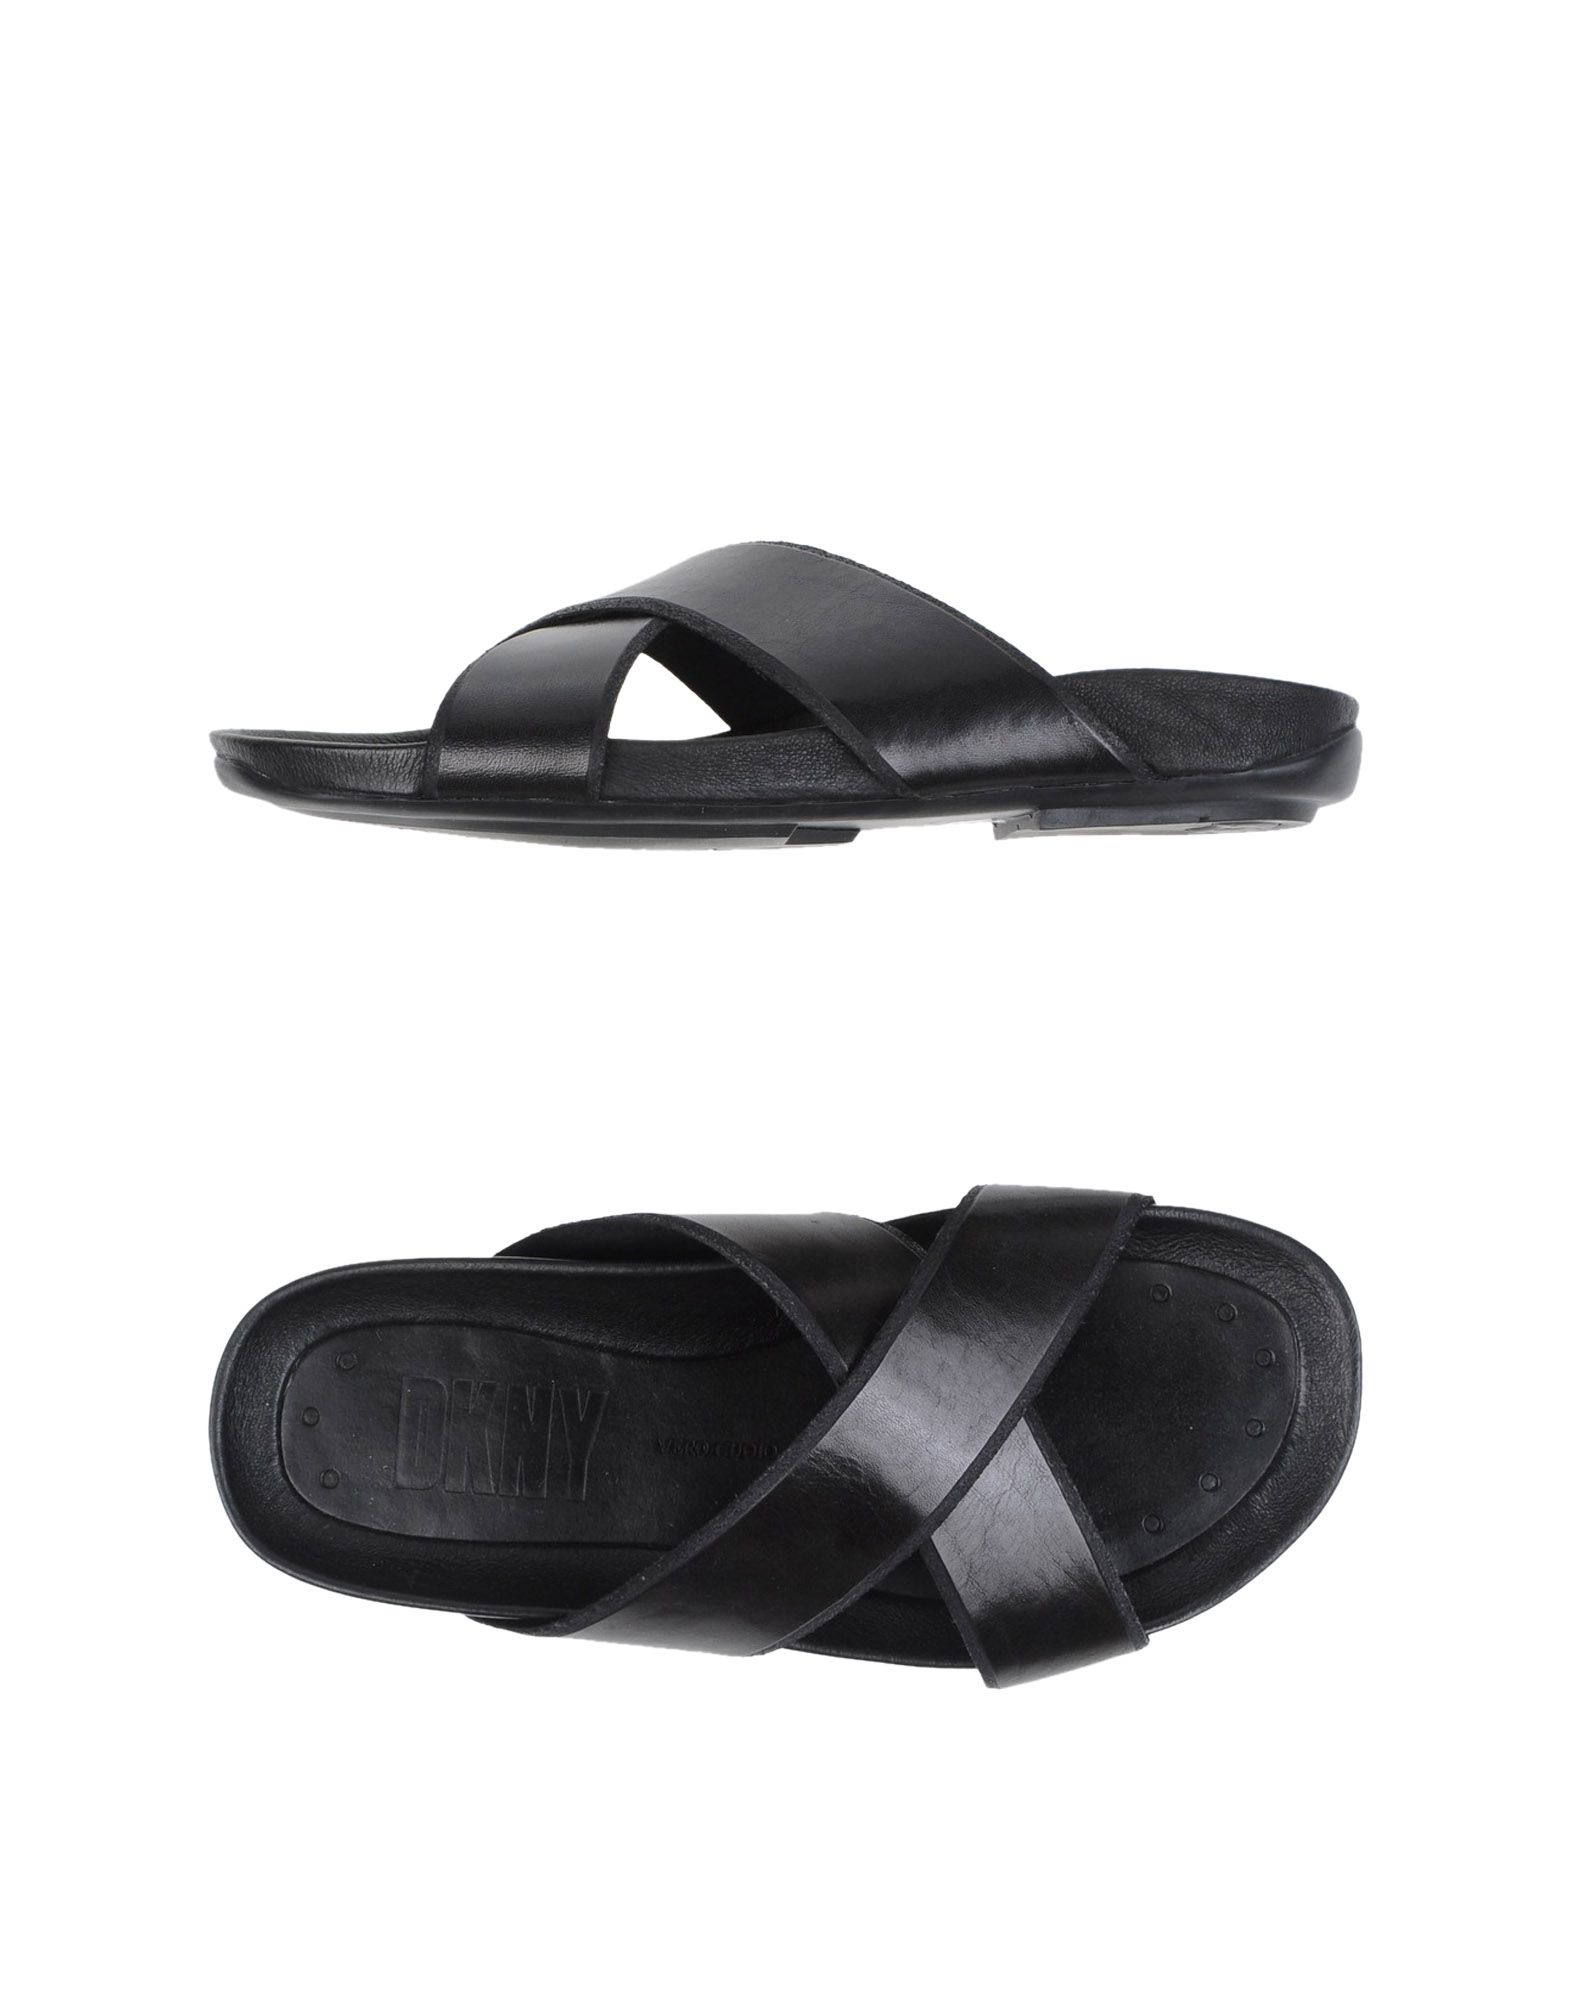 lyst dkny sandals in black for men